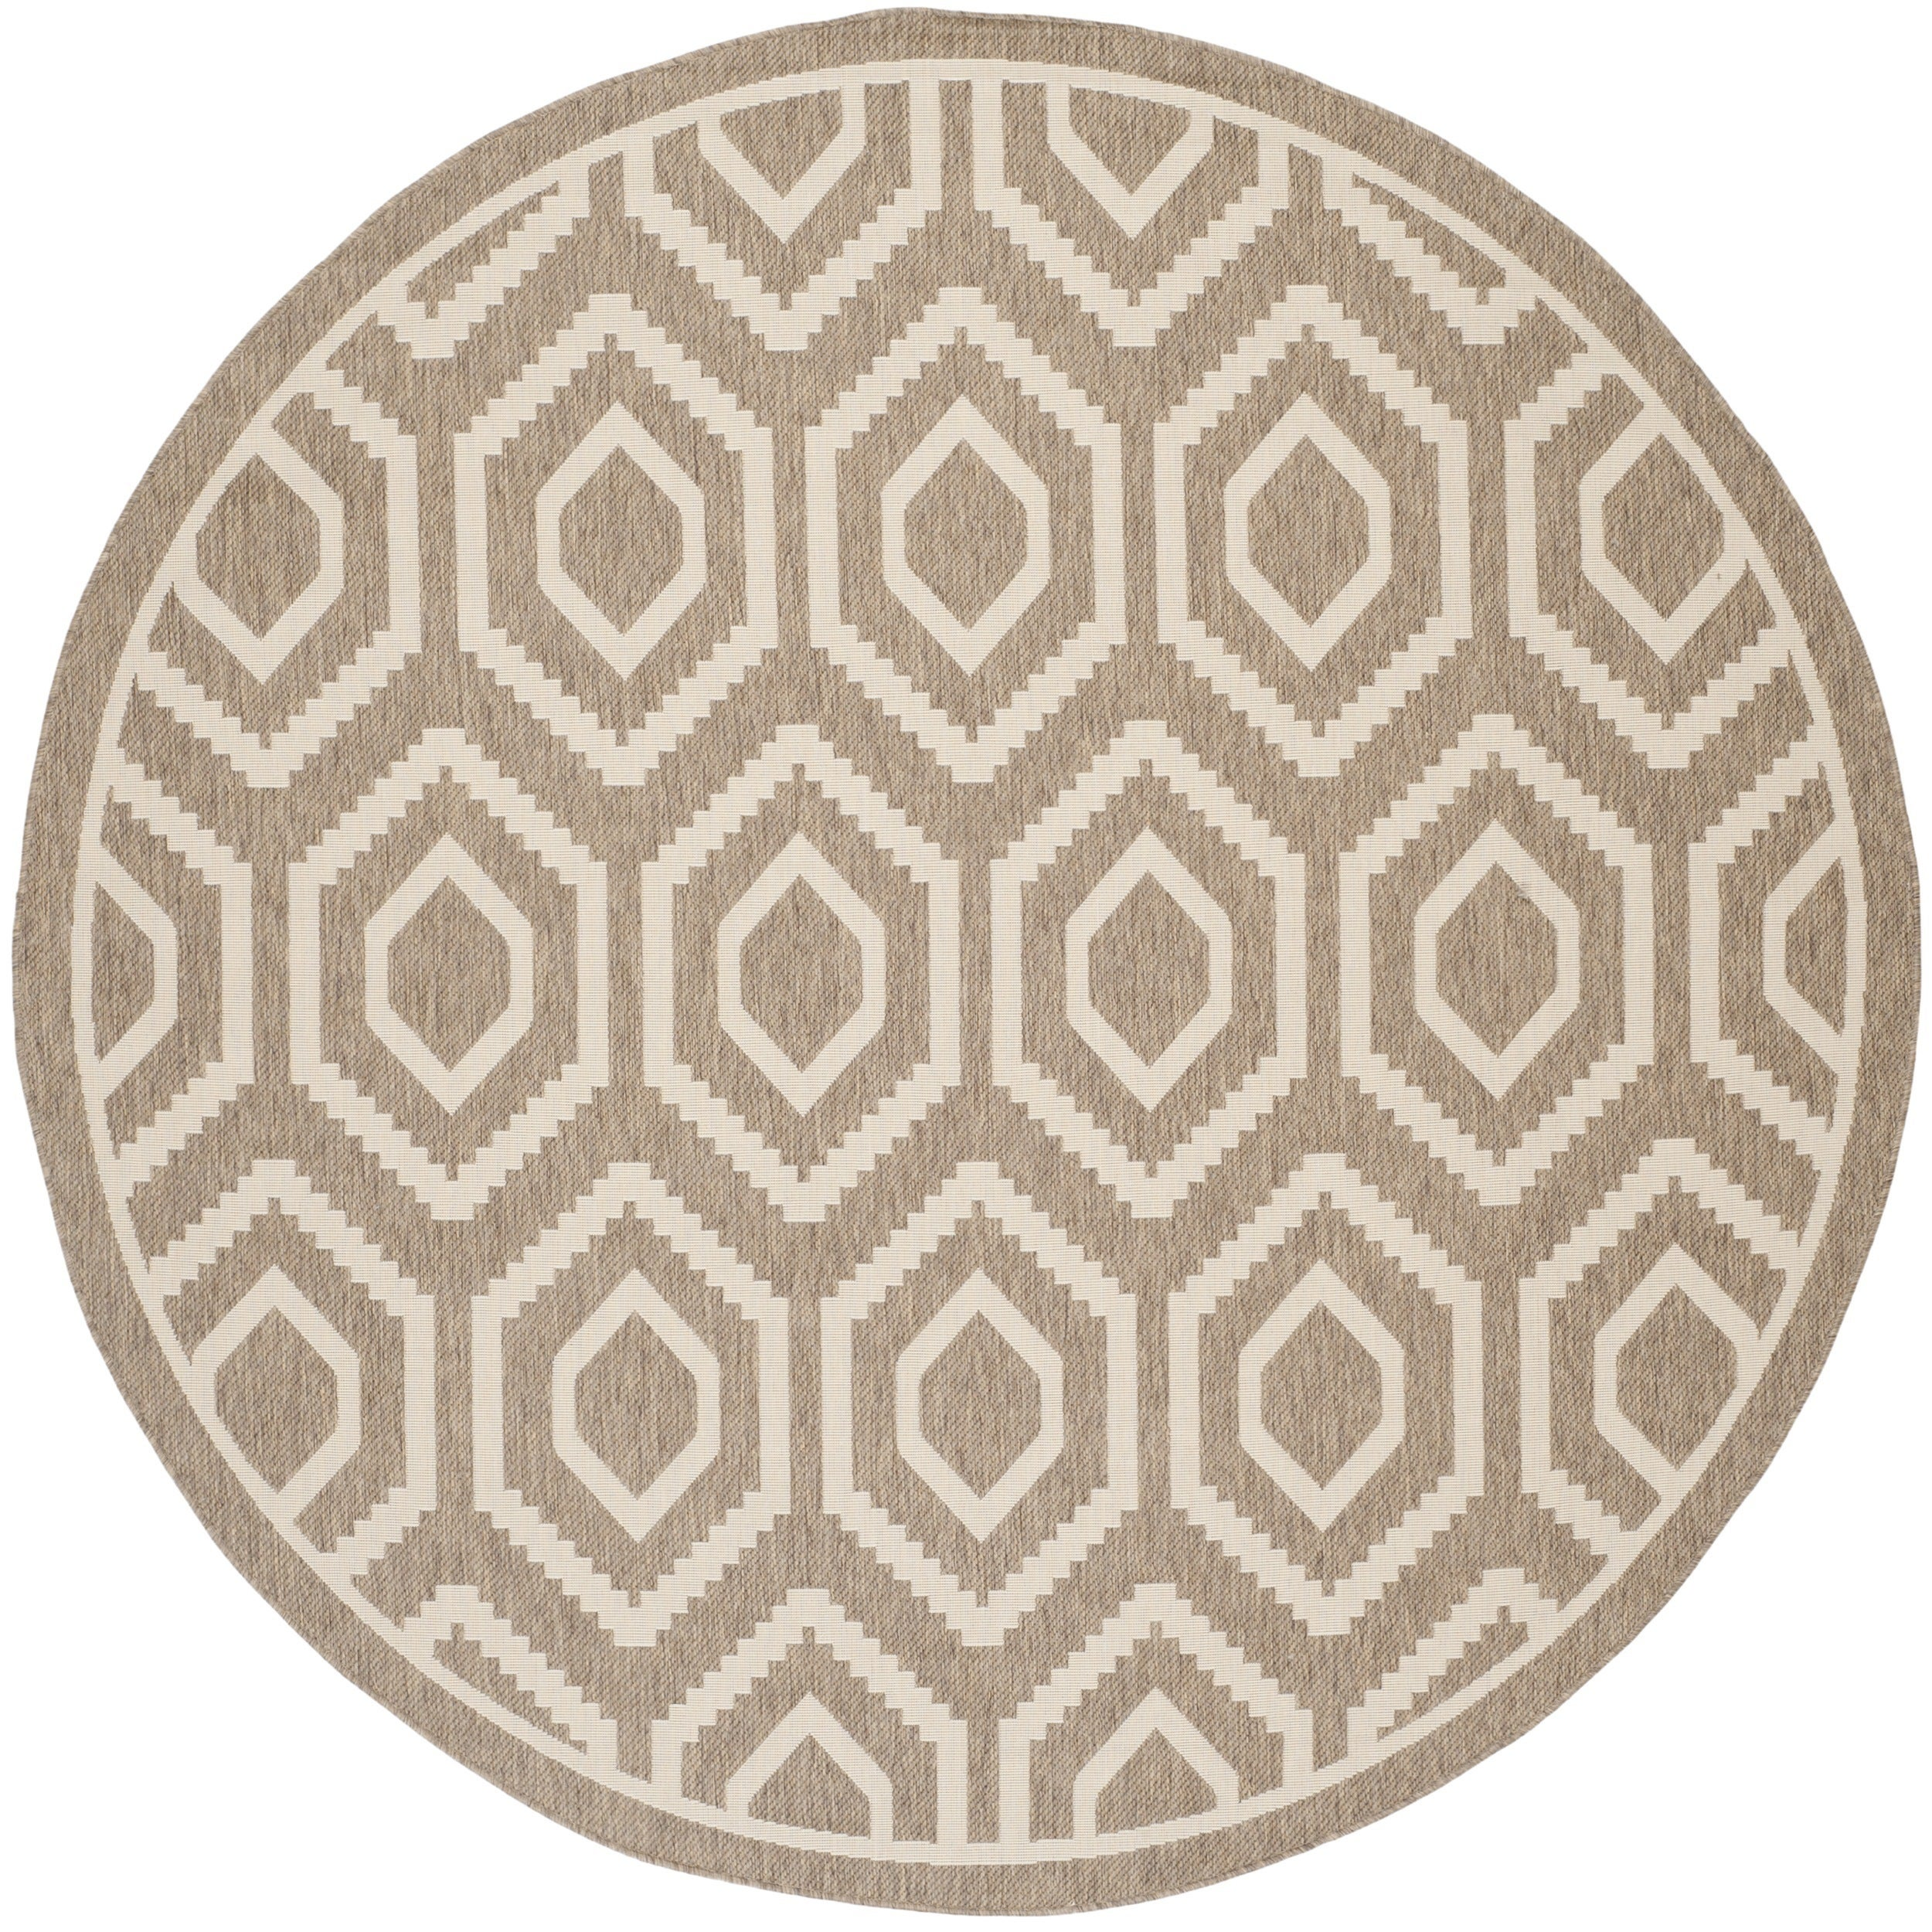 Safavieh Courtyard Honeycomb Brown/ Bone Indoor/ Outdoor ...